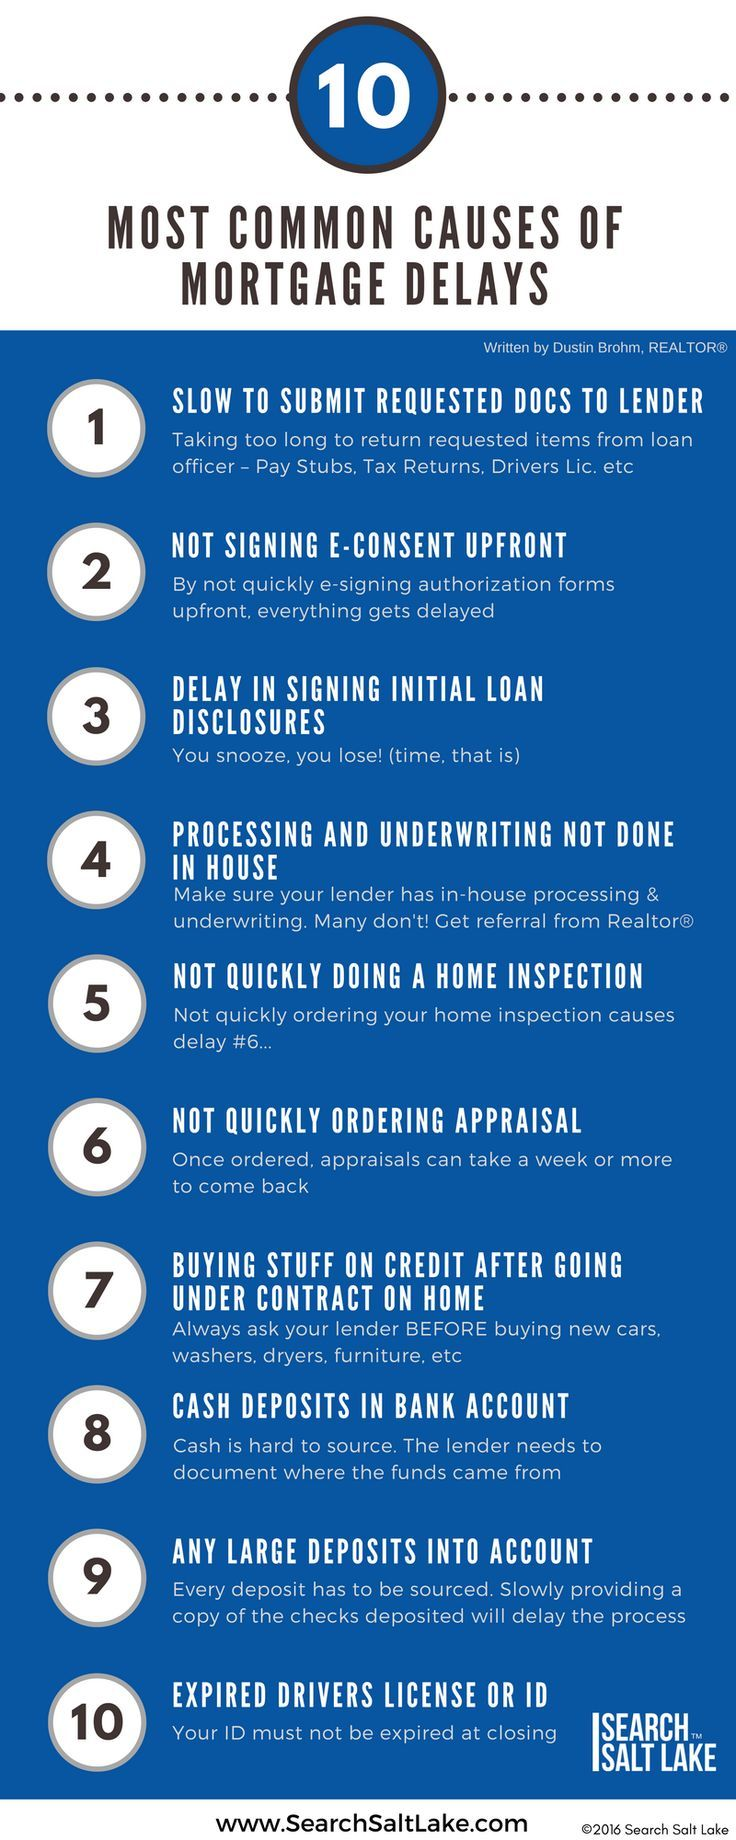 15 best kentucky fha appraisal guidelines images on pinterest 15 best kentucky fha appraisal guidelines images on pinterest kentucky louisville kentucky and real estate